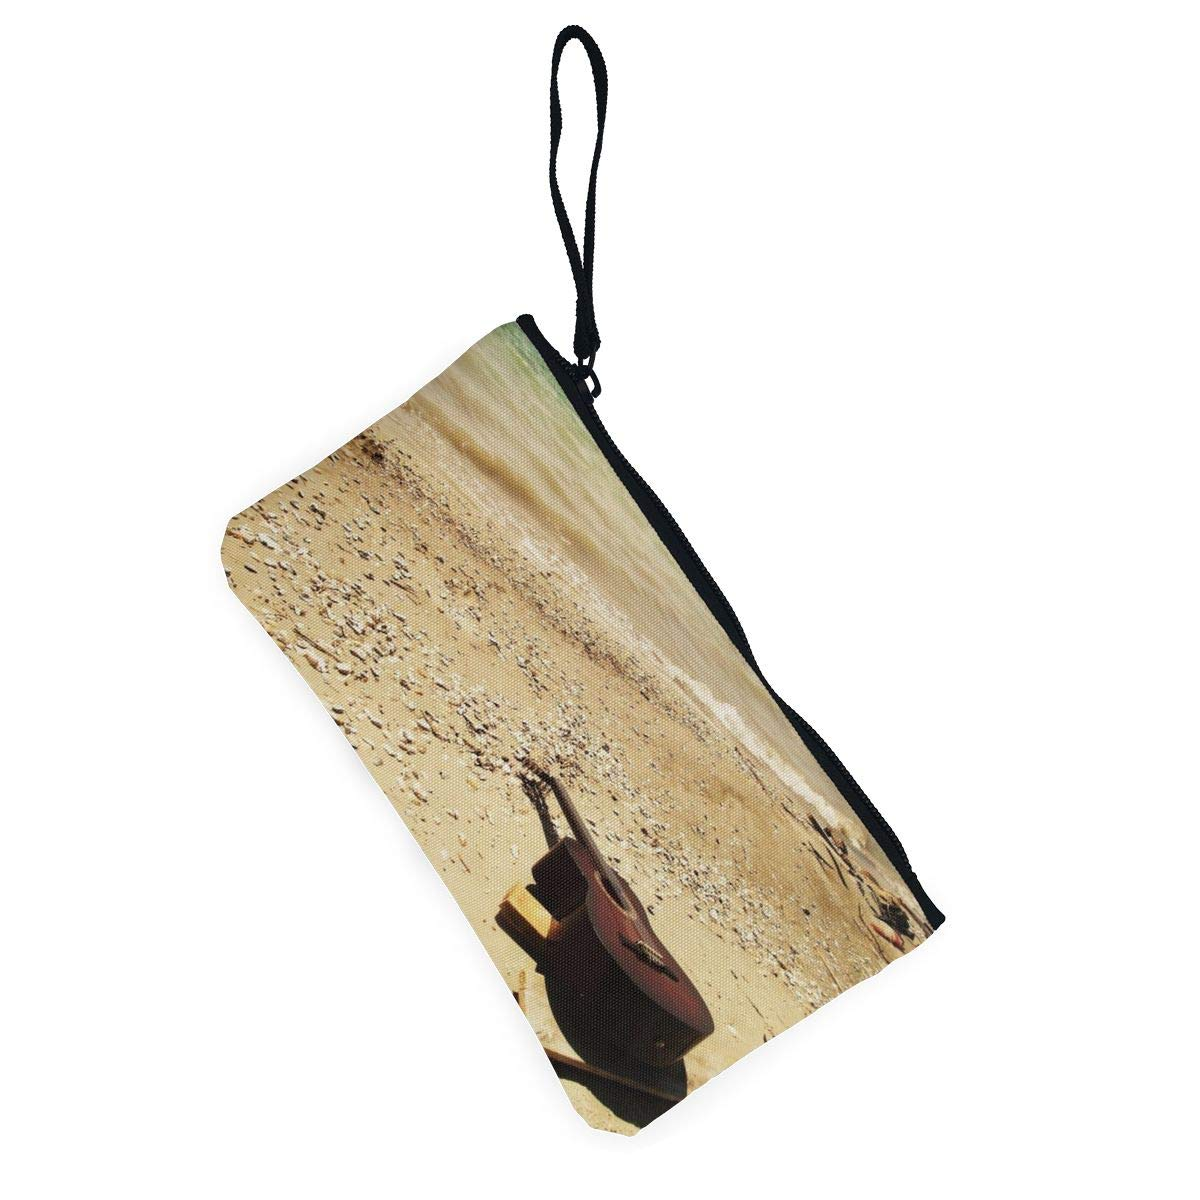 Guitar/_sea/_beach/_music Zipper Canvas Coin Purse Wallet Make Up Bag,Cellphone Bag With Handle